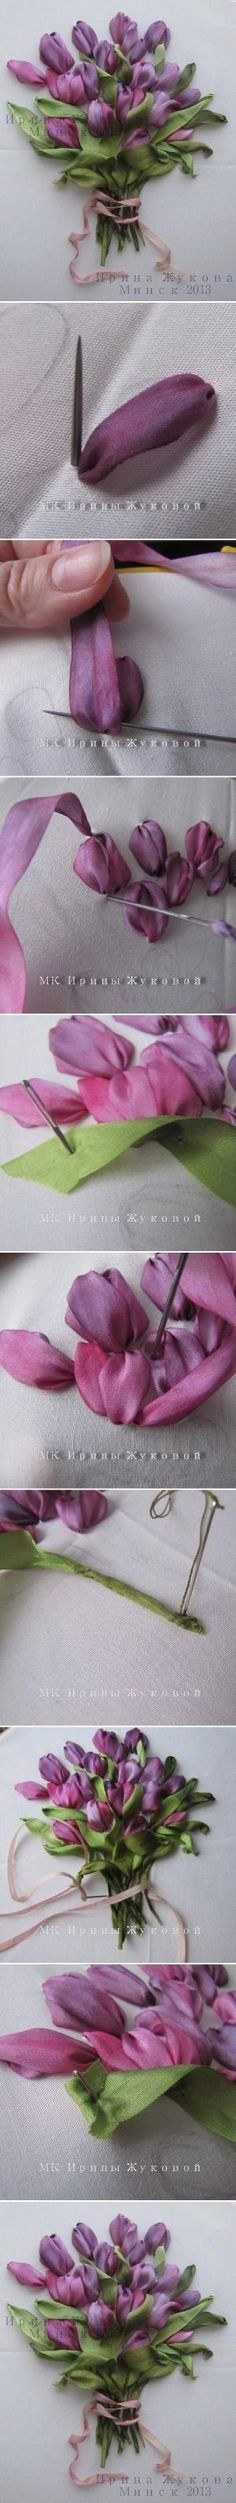 DIY Embroidery Ribbon Flower. This video tutorial is all there is. by rhonda.white.52206